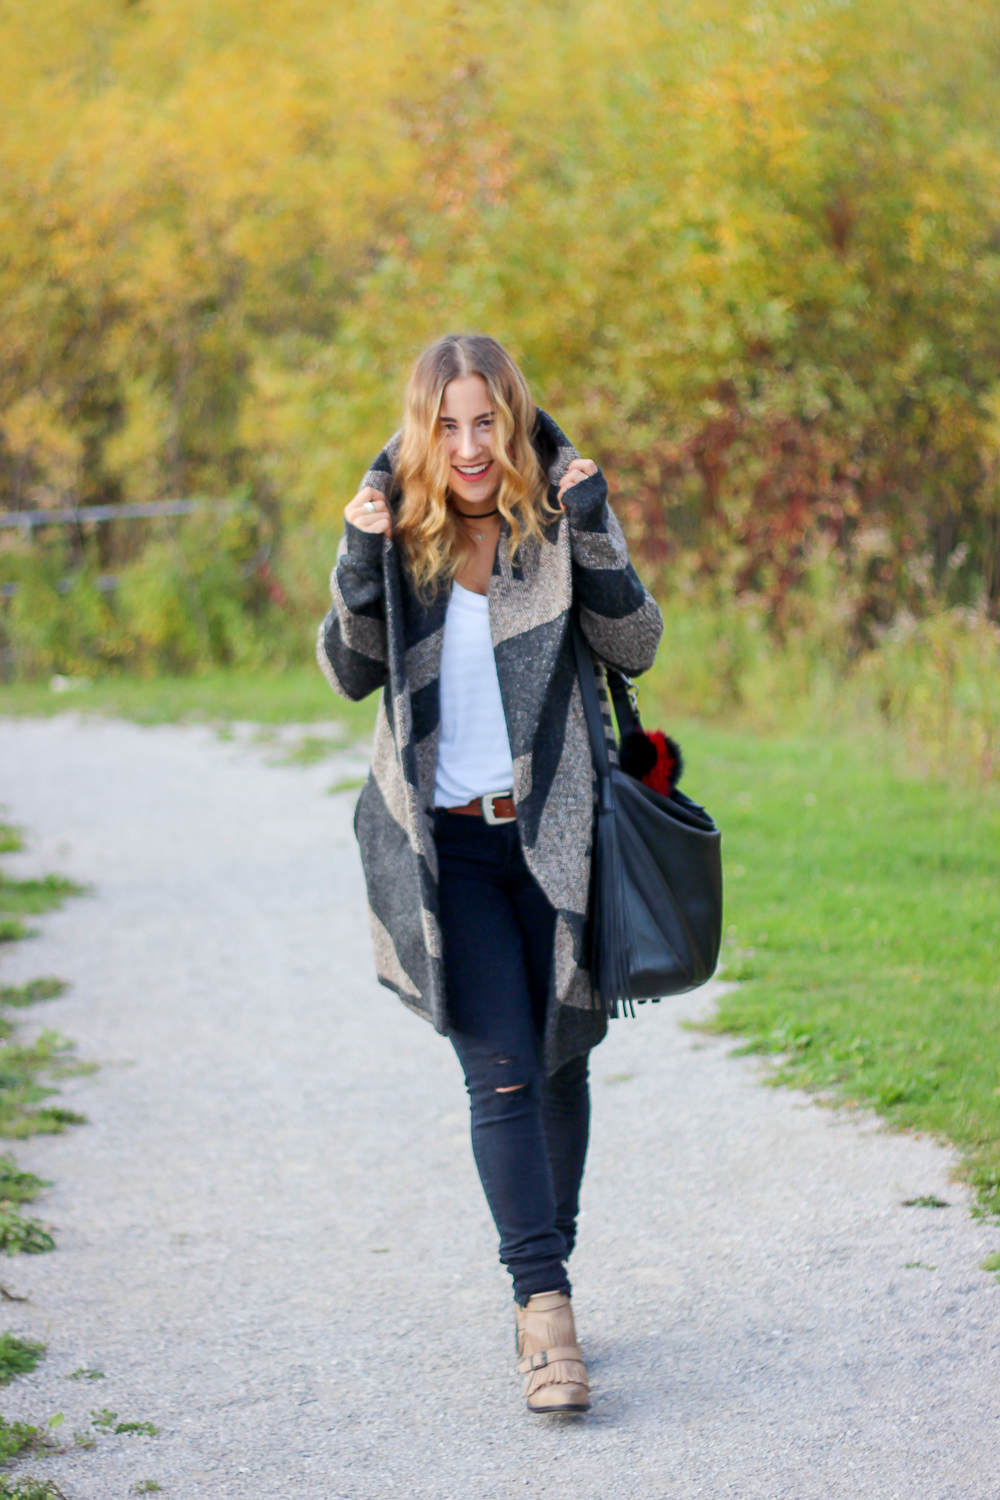 Fall Coatigan from Le Chateau, styled by Canadian fashion blogger, Jackie Goldhar, from Something About That